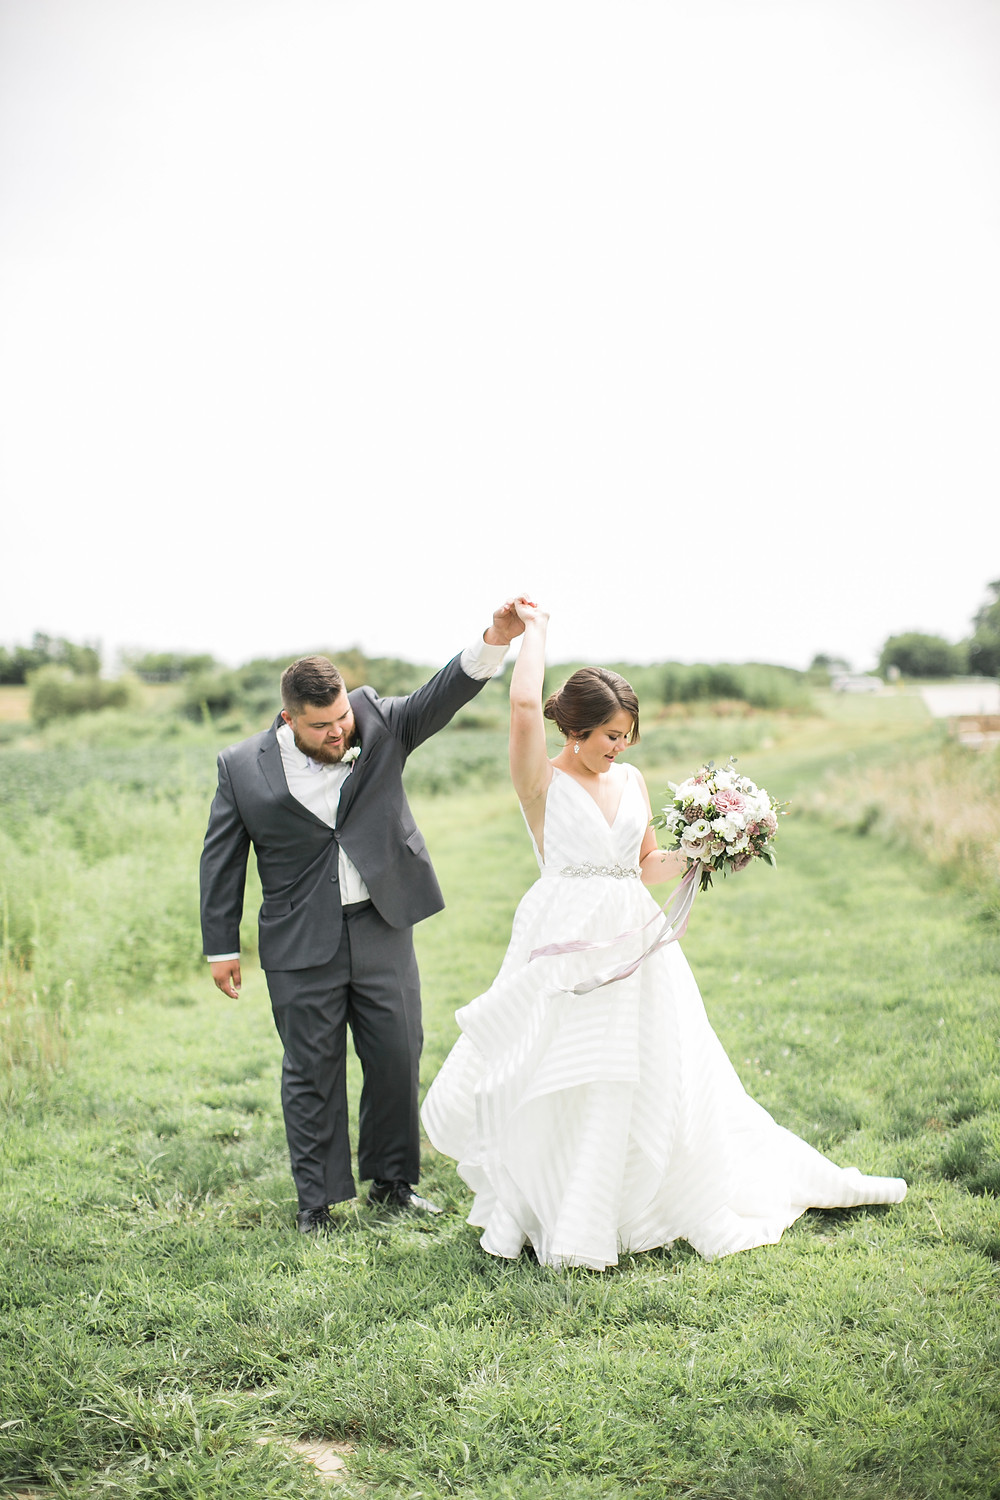 bride and groom dancing in a grass field with flower bouquet and striped dress